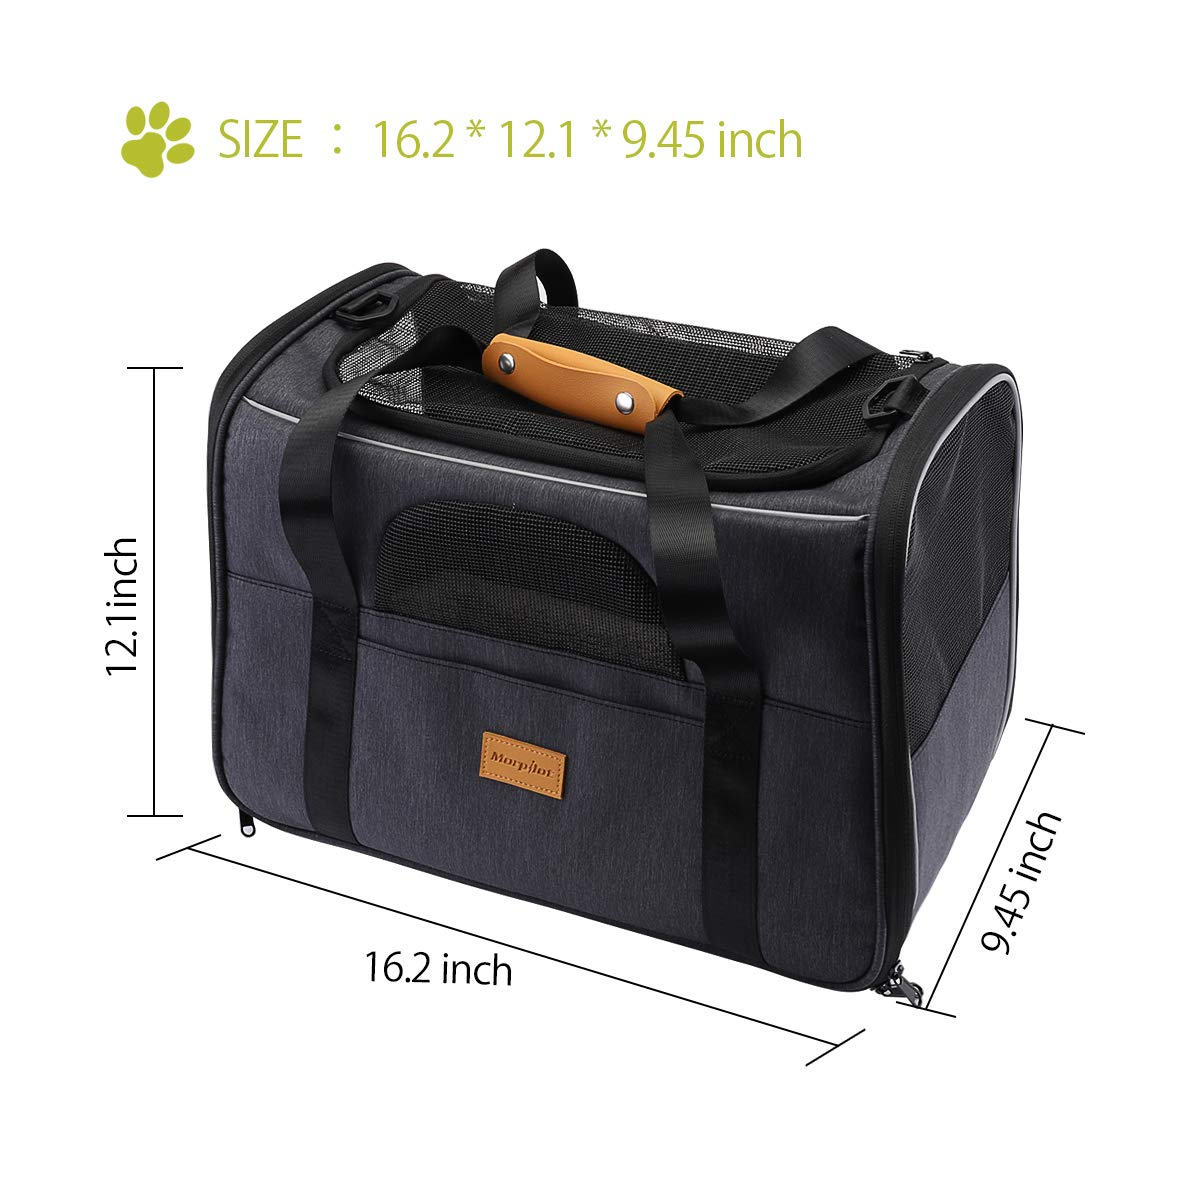 morpilot Pet Carrier Bag, Portable Breathable Transport Bag for Dogs and Cats, Folding Travel Pet Carrier with Adjustable Shoulder Strap and with a Foldable Bowl as a Gift